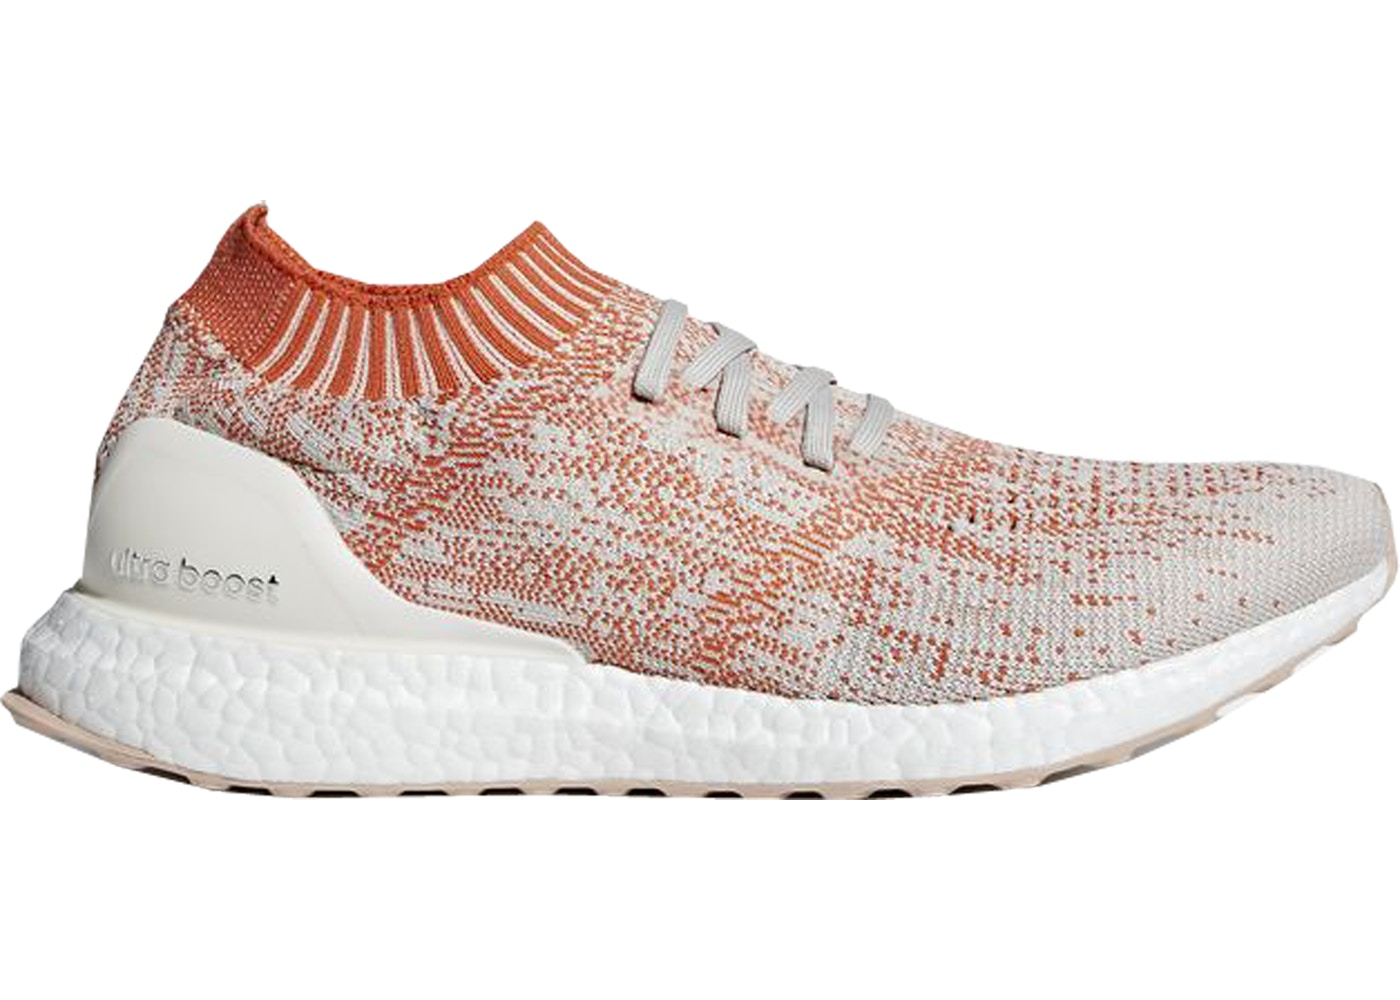 Adidas Ultra Boost Uncaged Raw Amber | CM8279